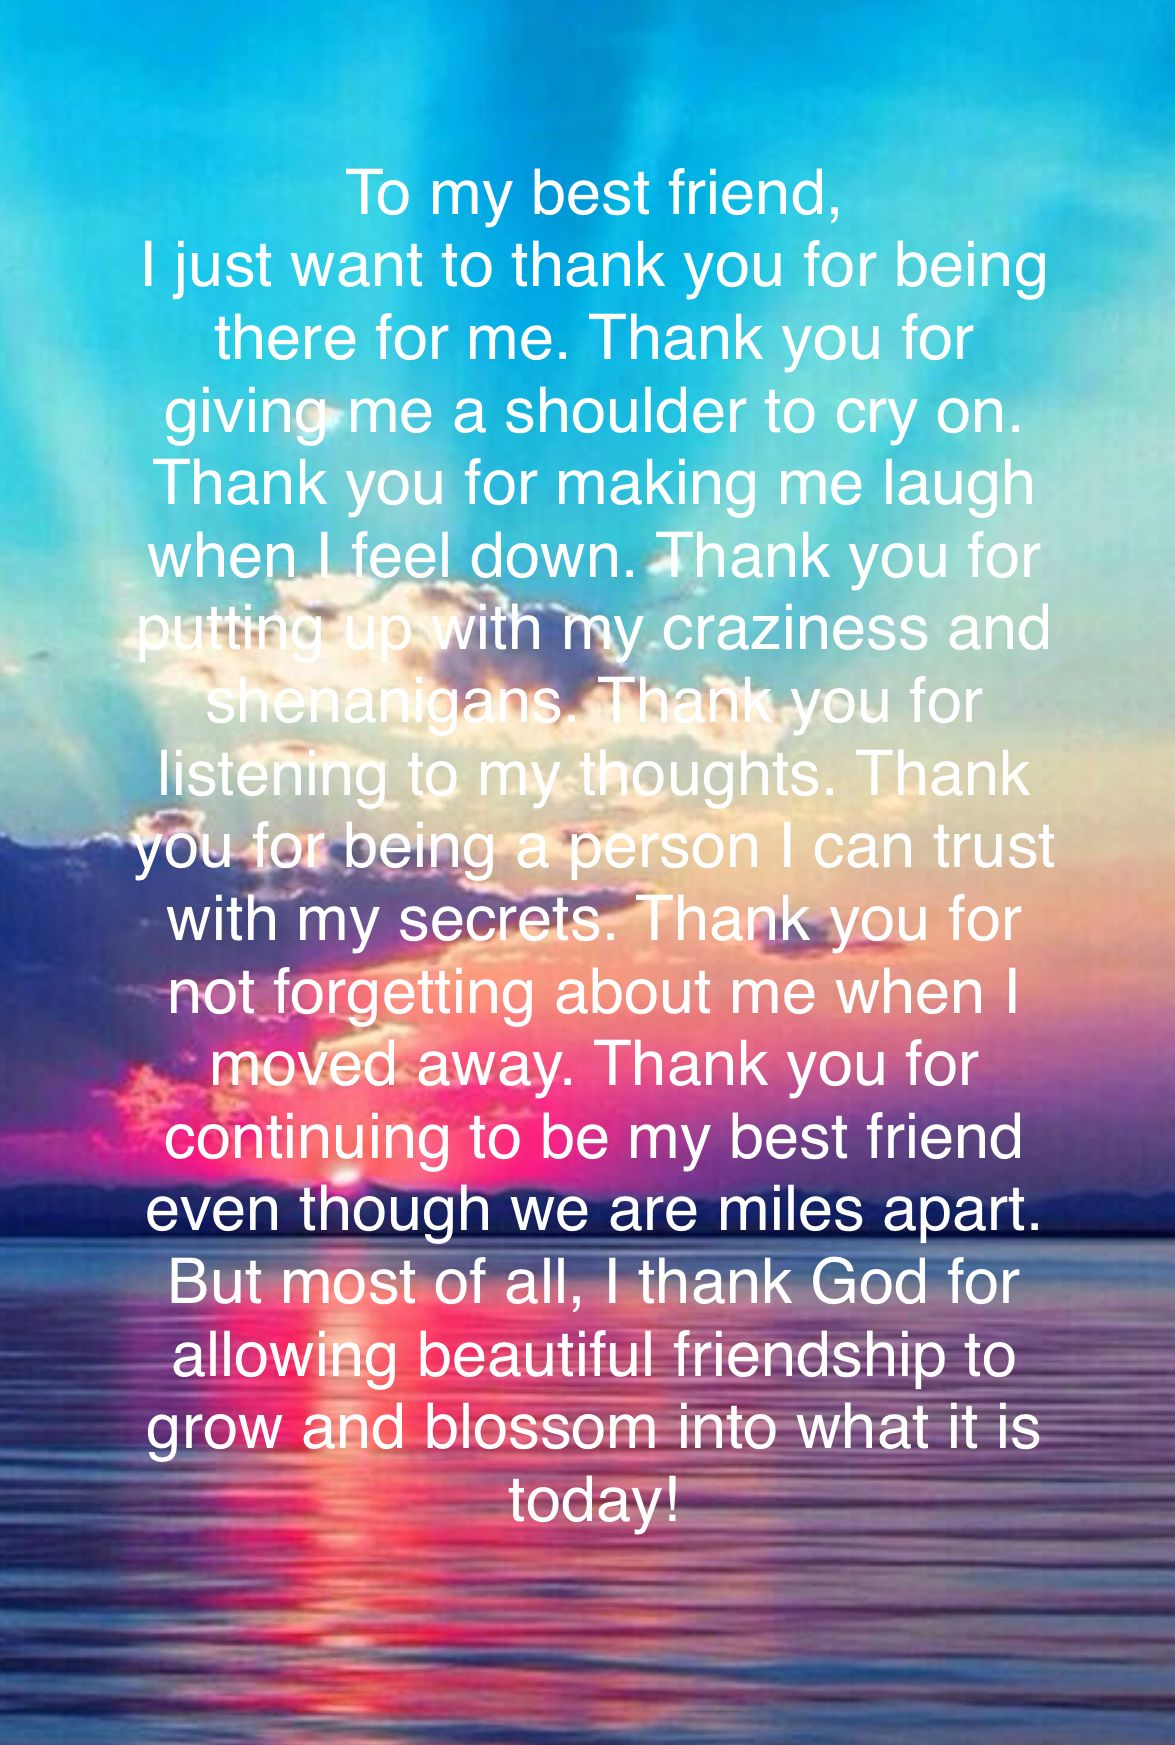 Friendship Quotes For Best Friends Birthday